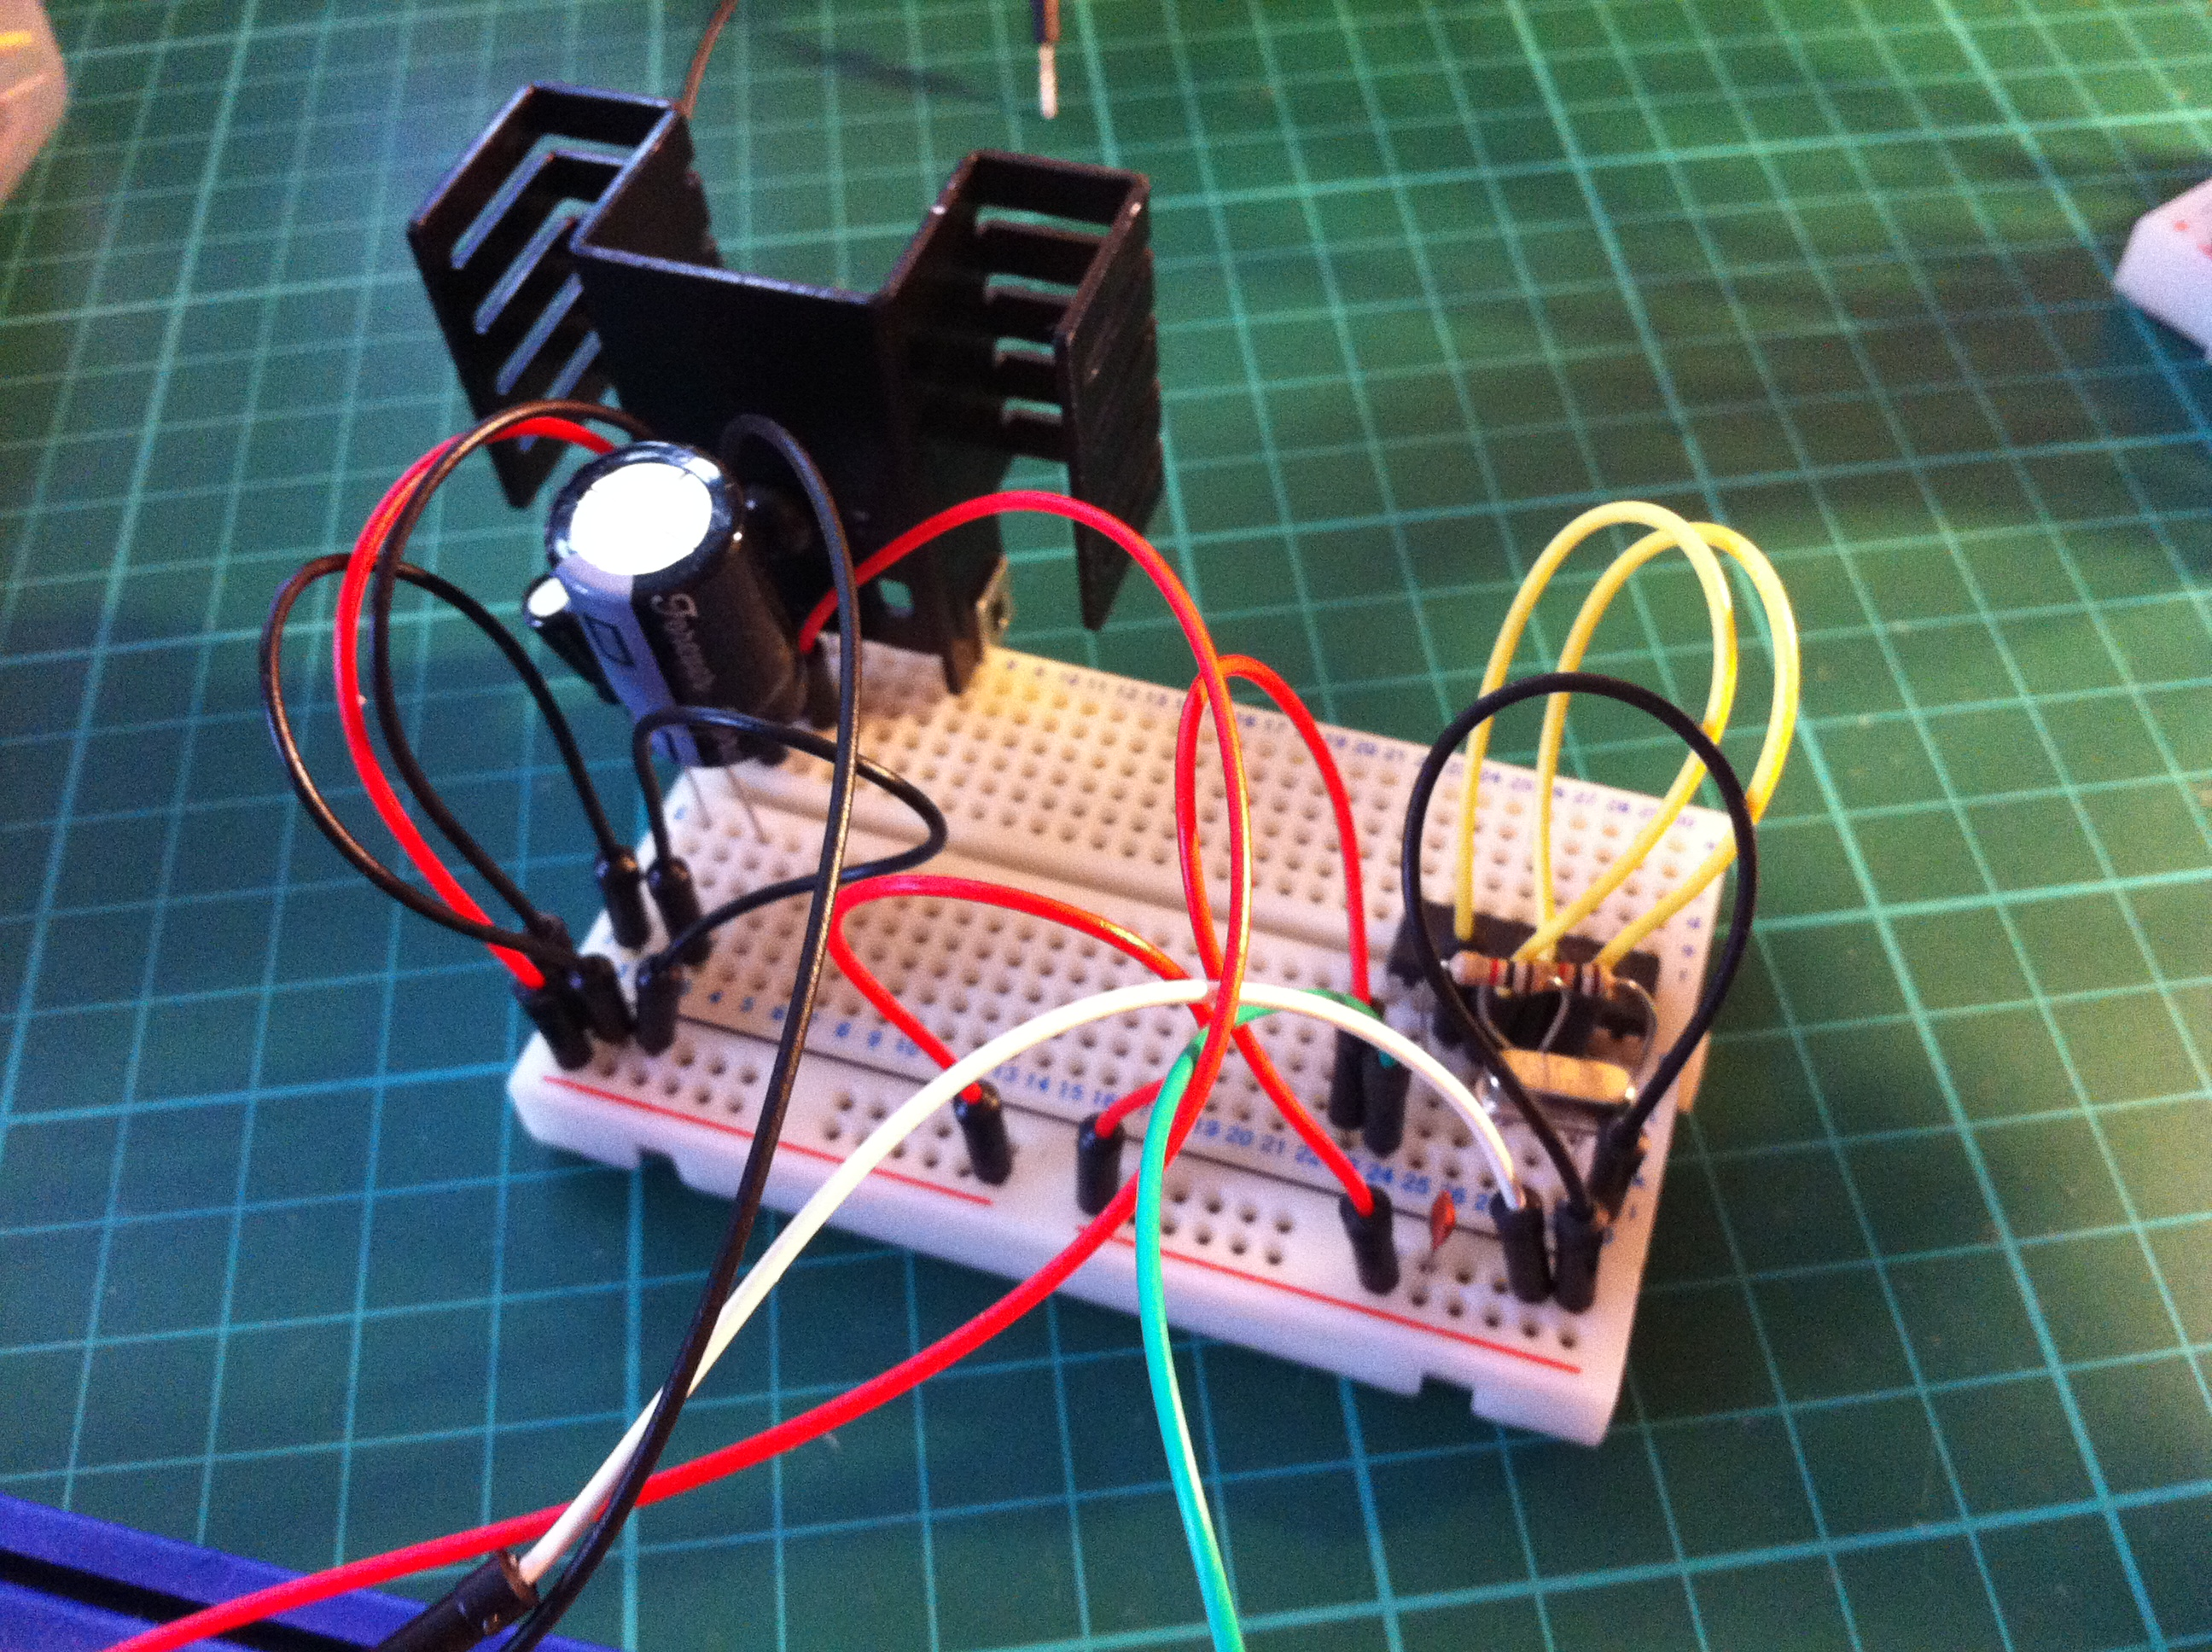 Prototype Power Supply and Clock